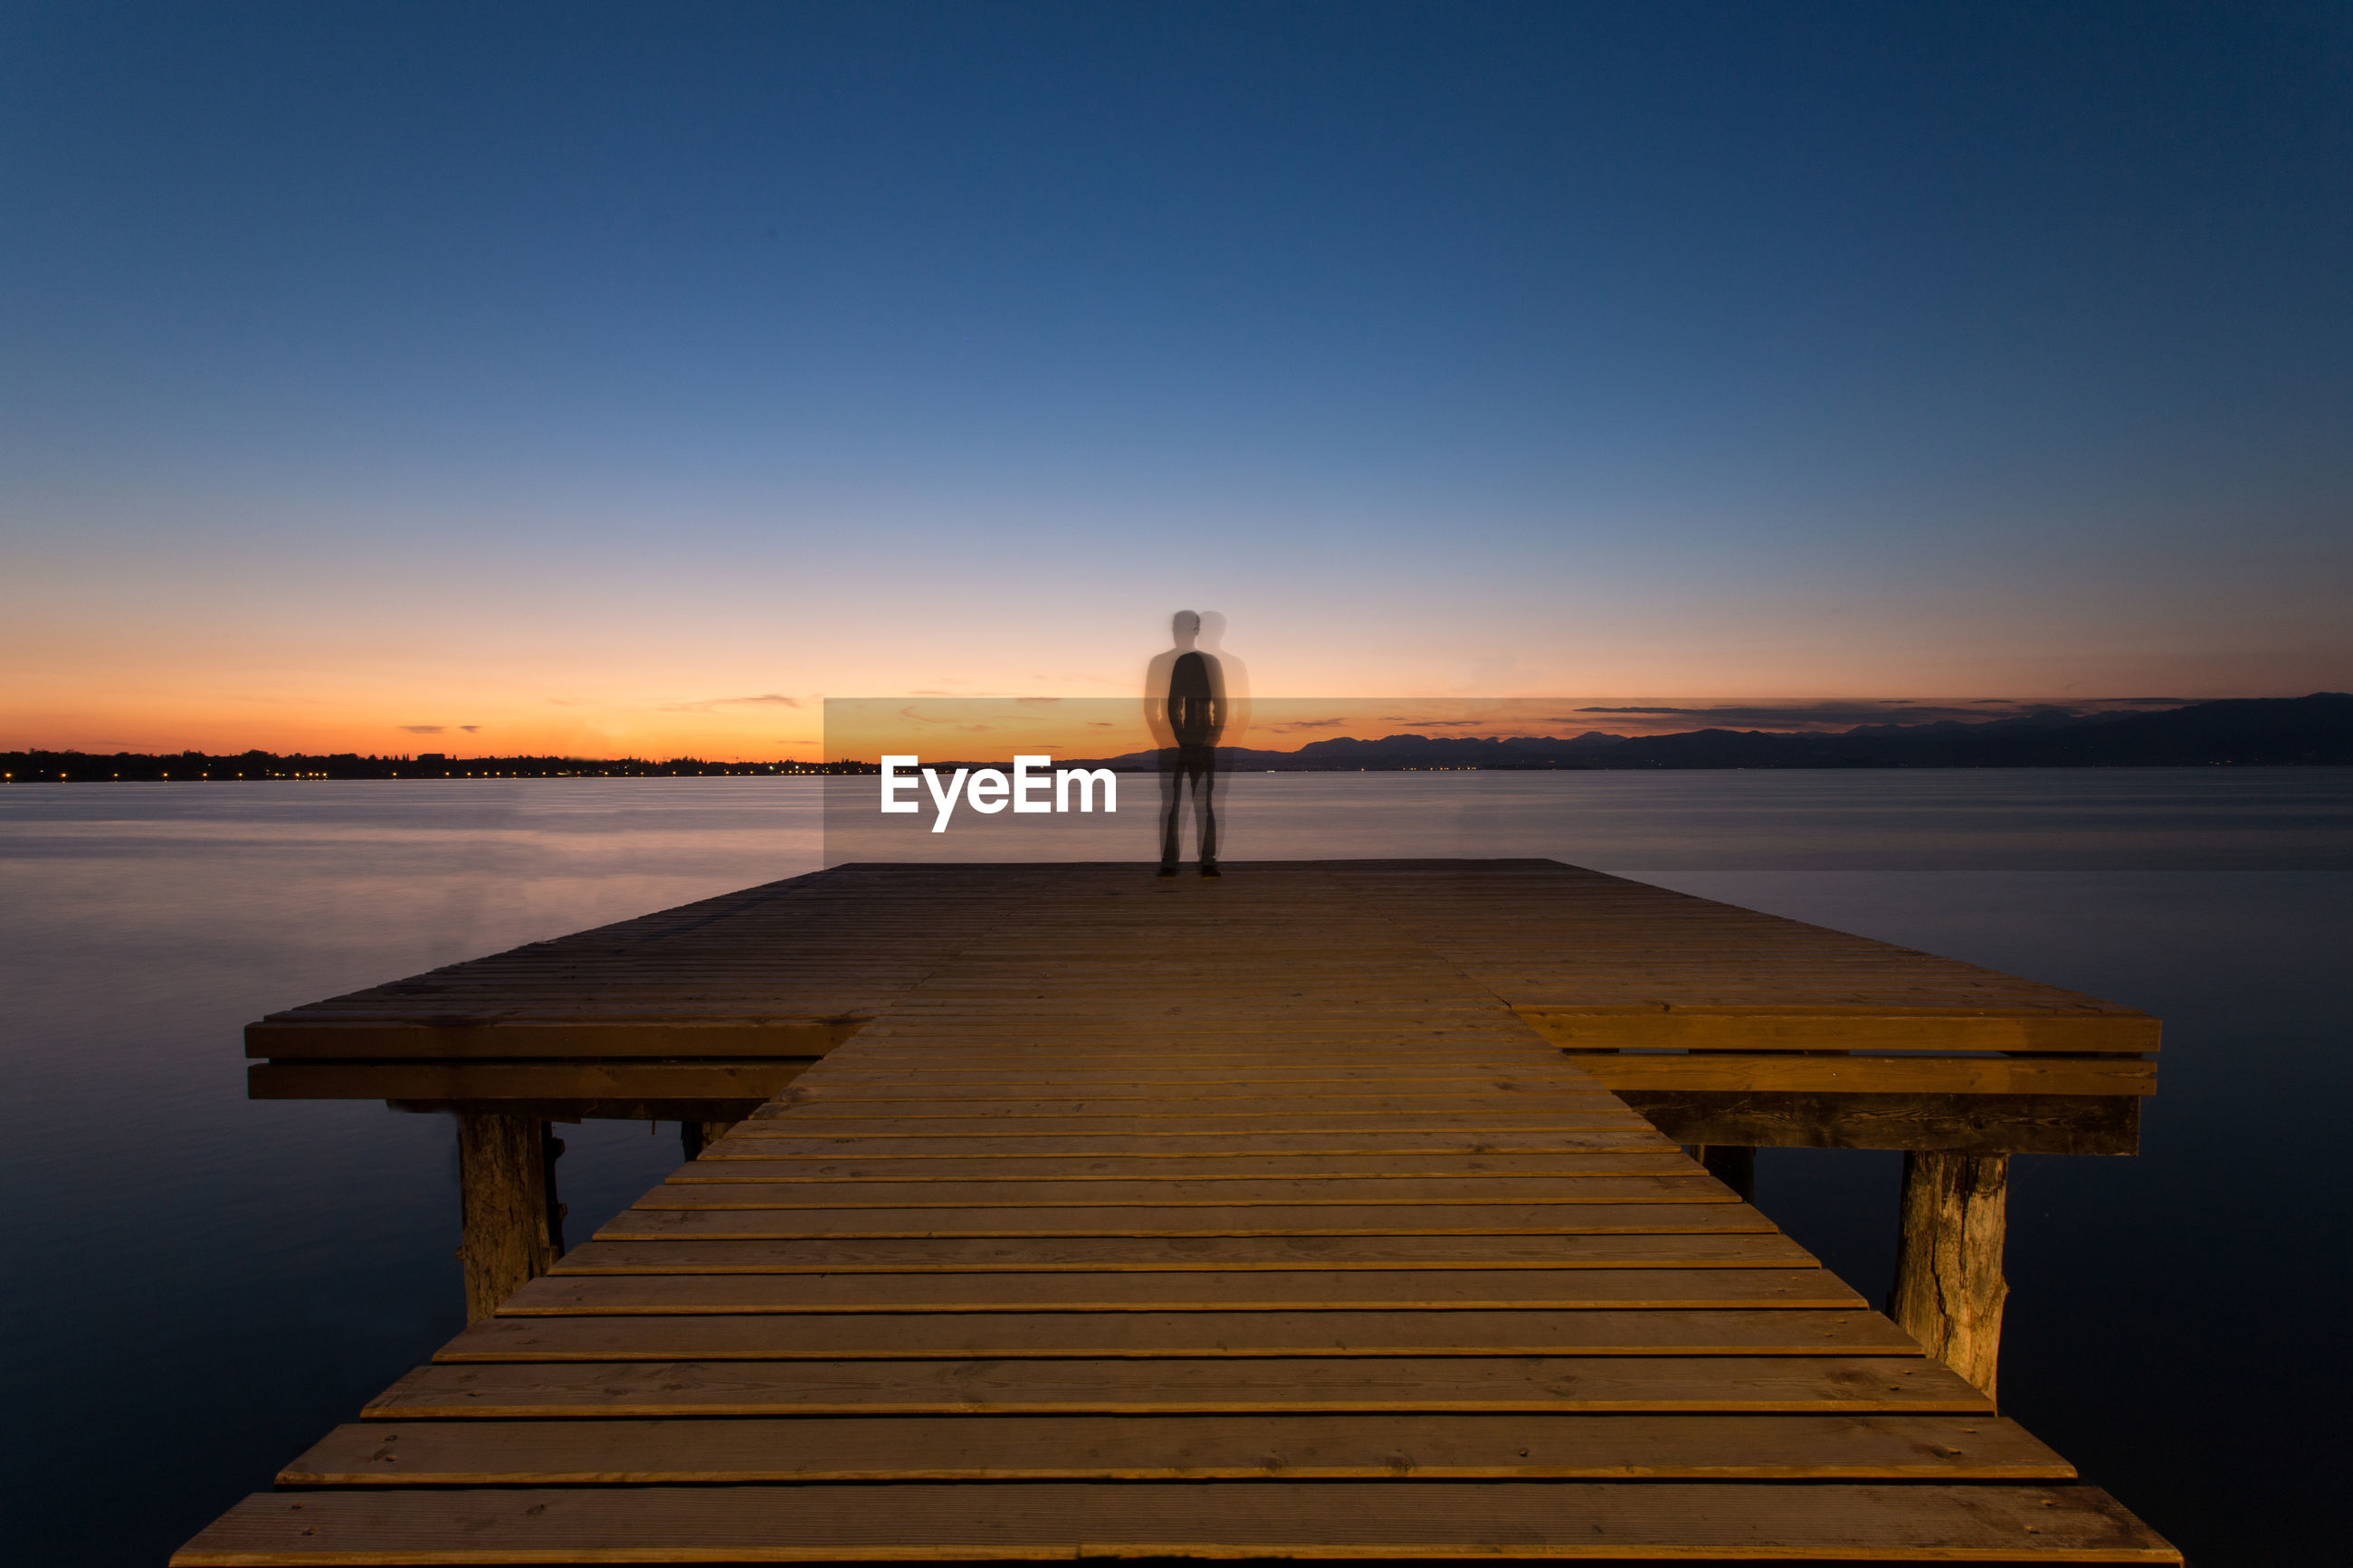 Man on pier against romantic sky at sunset